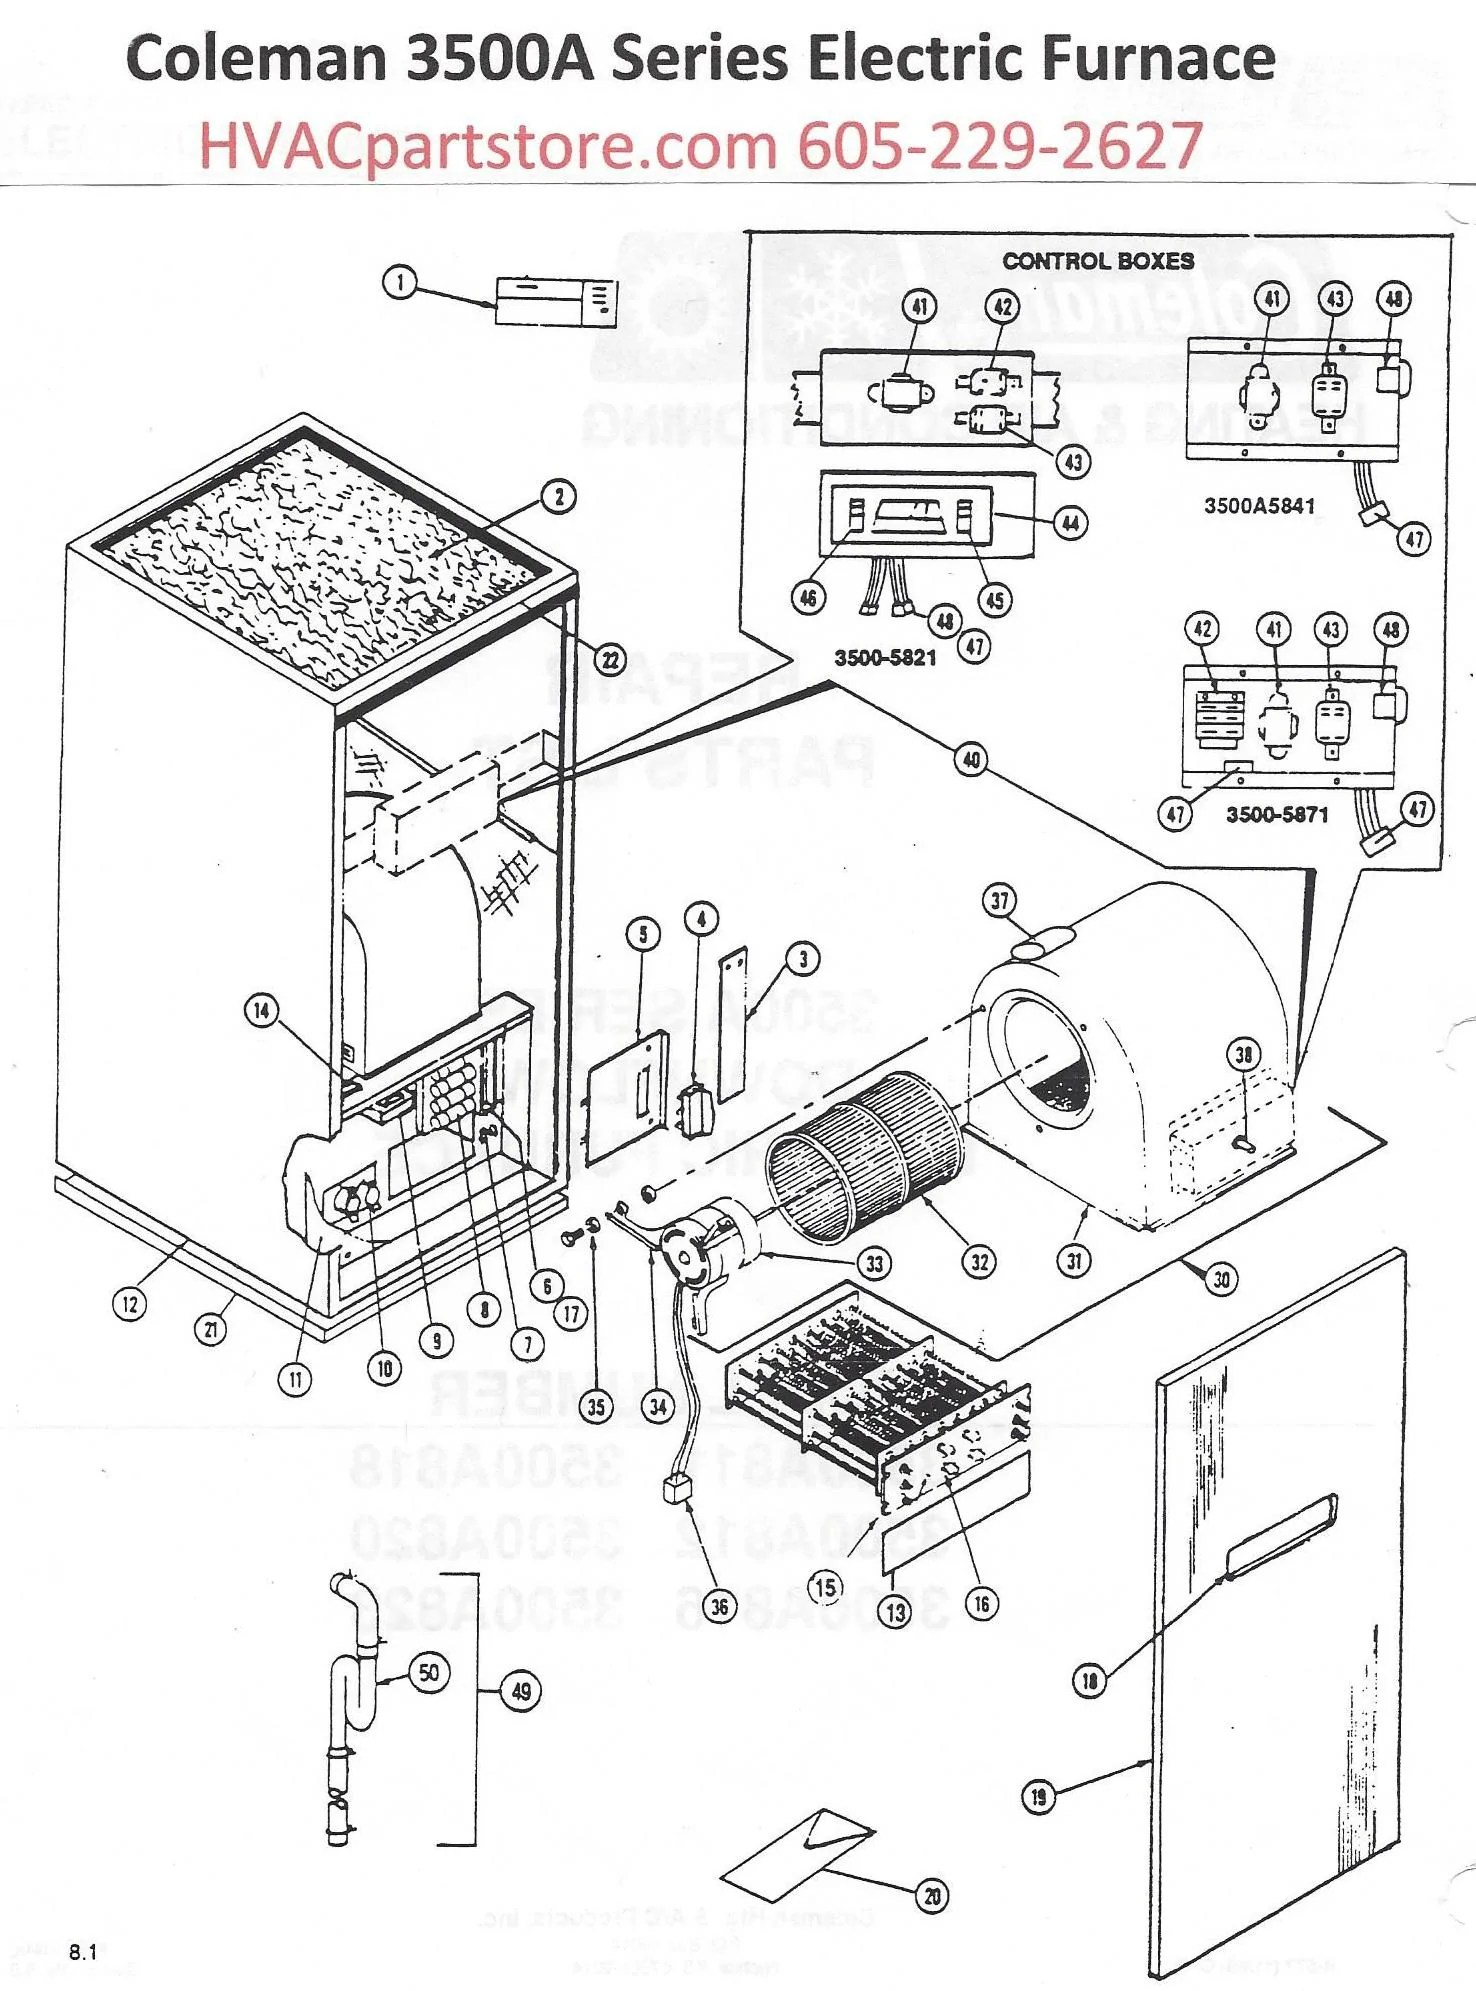 3500a818 coleman electric furnace parts hvacpartstore coleman evcon eb15b electric furnace wiring diagram click here to [ 1476 x 1991 Pixel ]